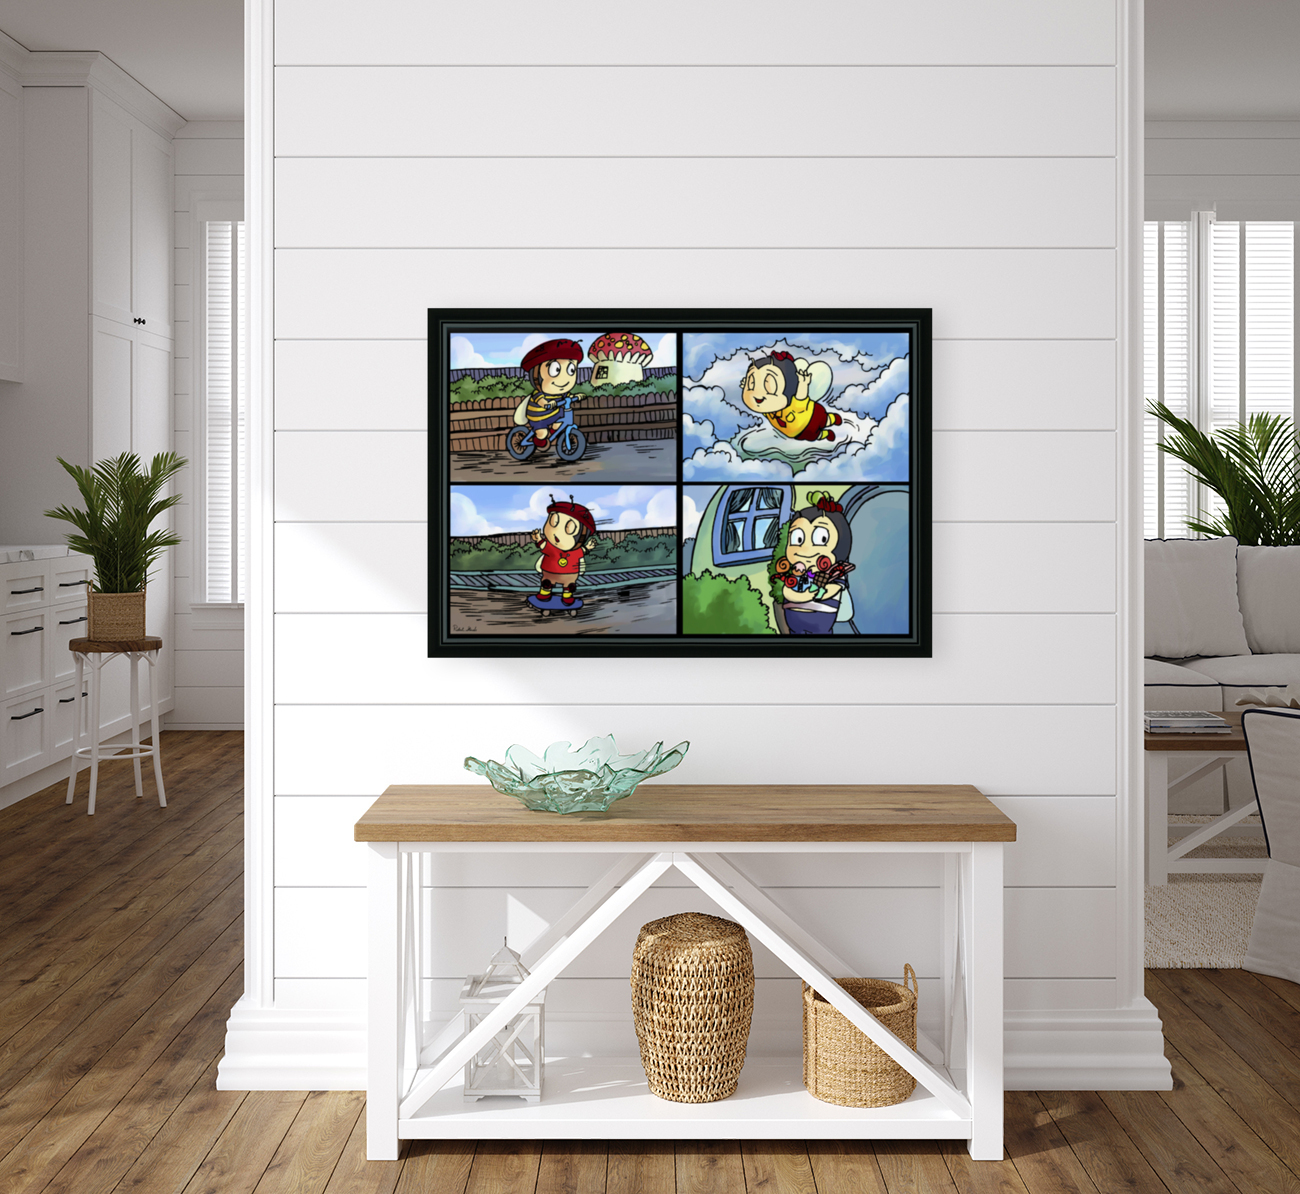 Buster the Bee in Action   4 panel Favorites for Kids Room and Nursery   Bugville Critters  Art